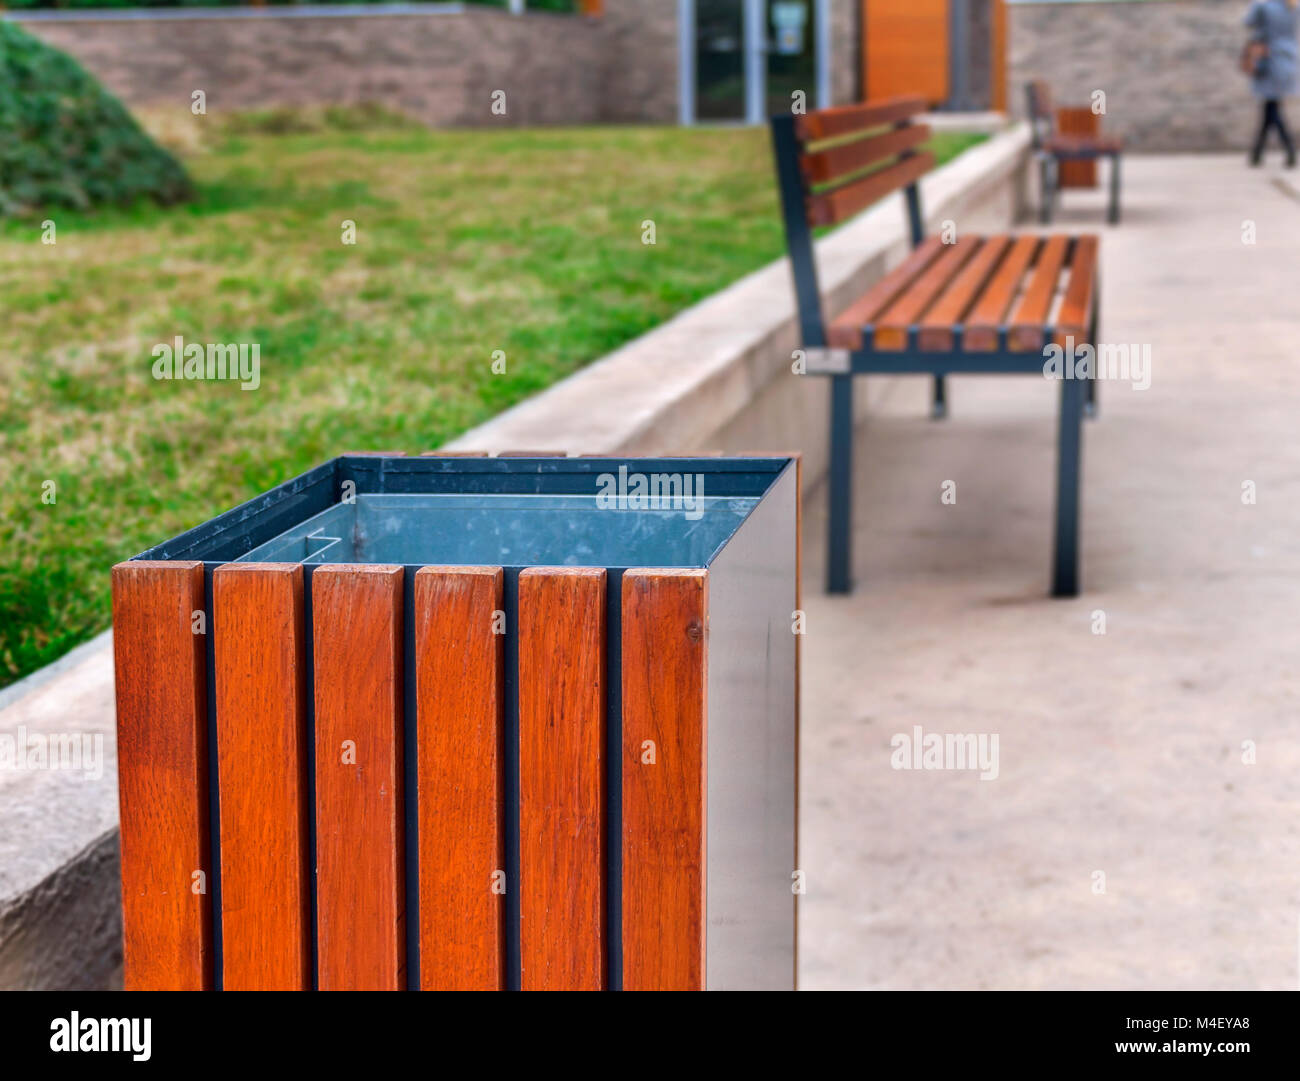 A trash can and a park bench in the urban city block - Stock Image